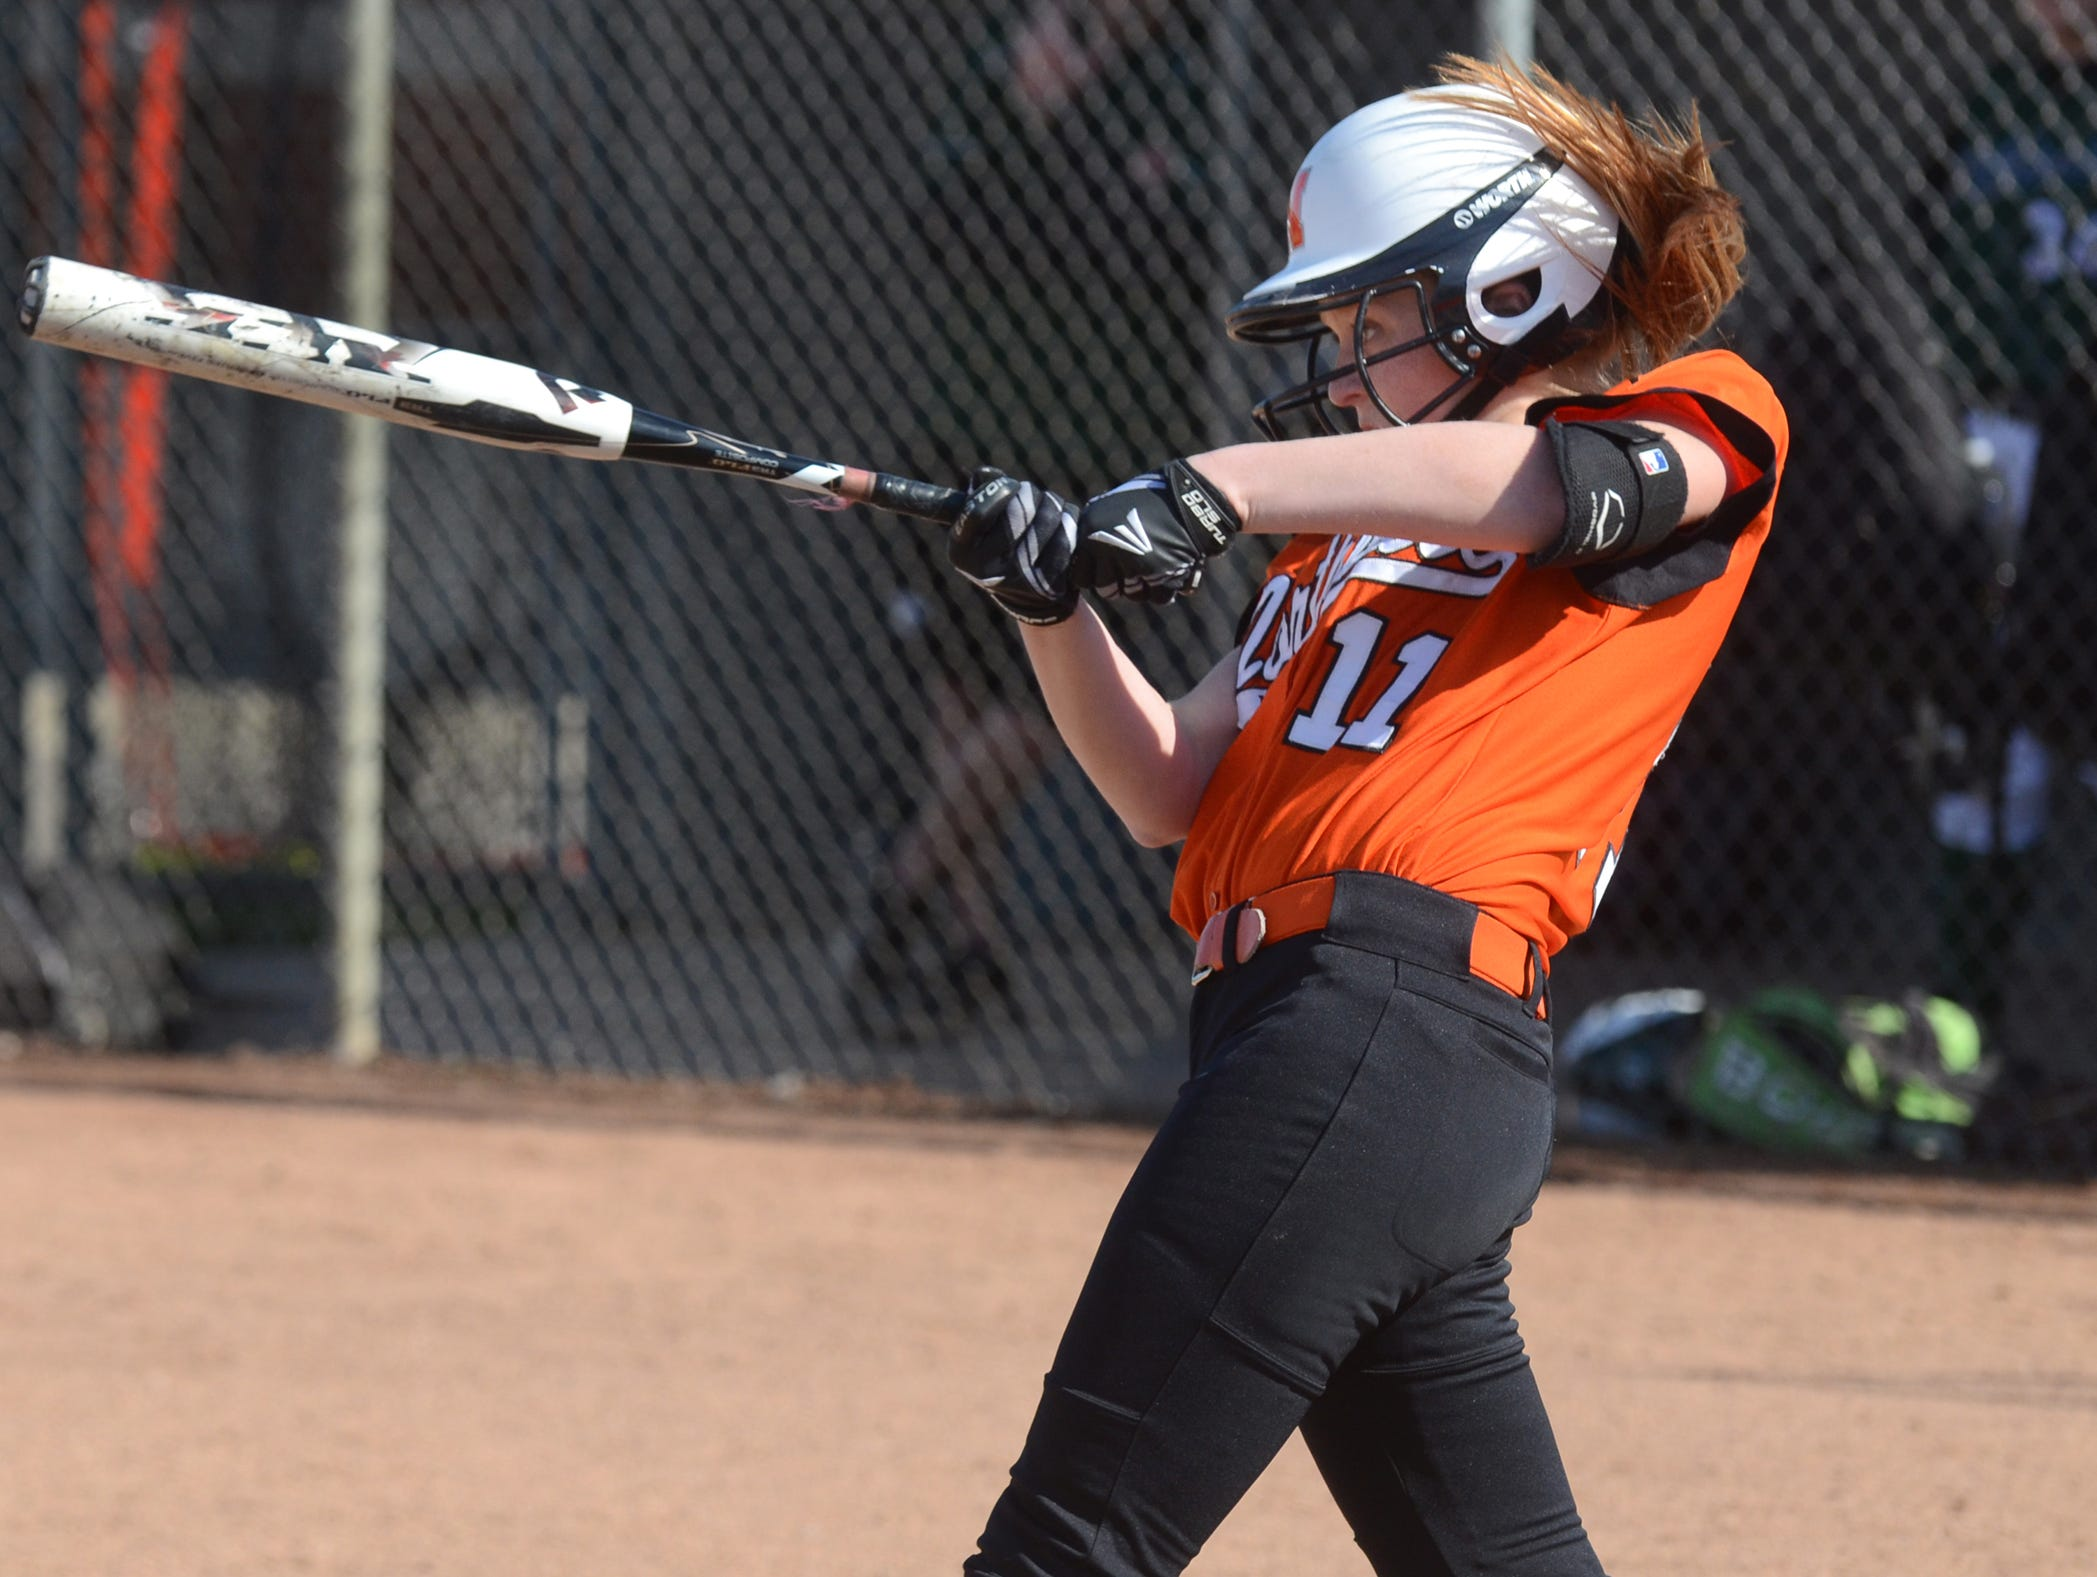 Northville freshman Sarah Hige hit a solo homer and grand slam in a 9-7 loss April 23 to Canton.